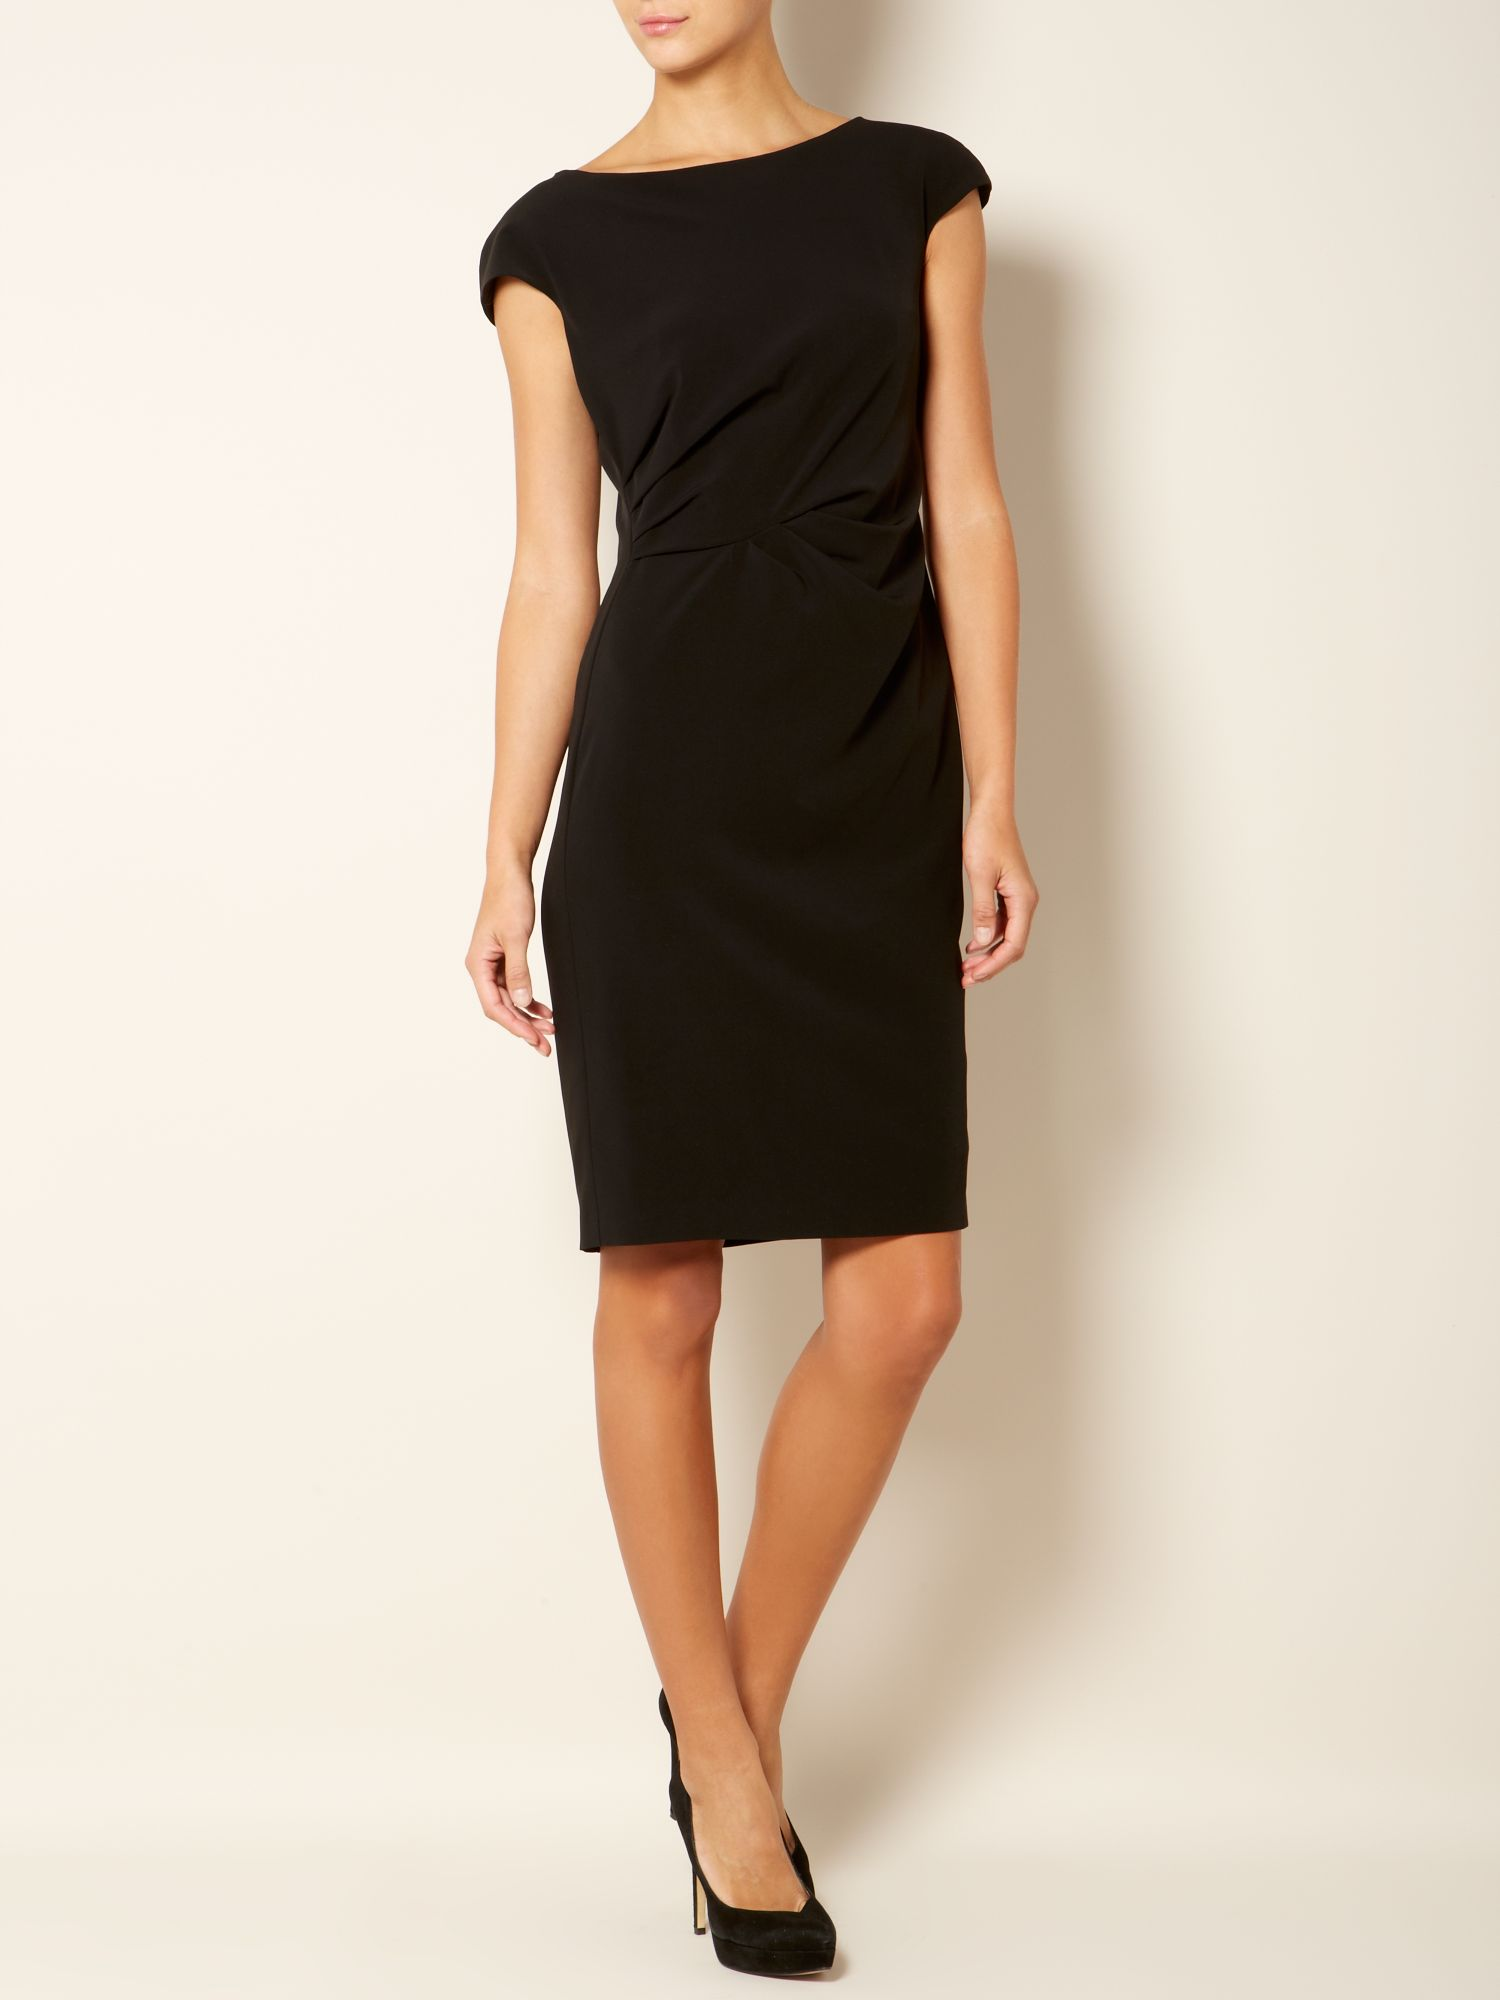 Weekend by maxmara Morgana Short Sleeve Rouched Dress in Black - Lyst